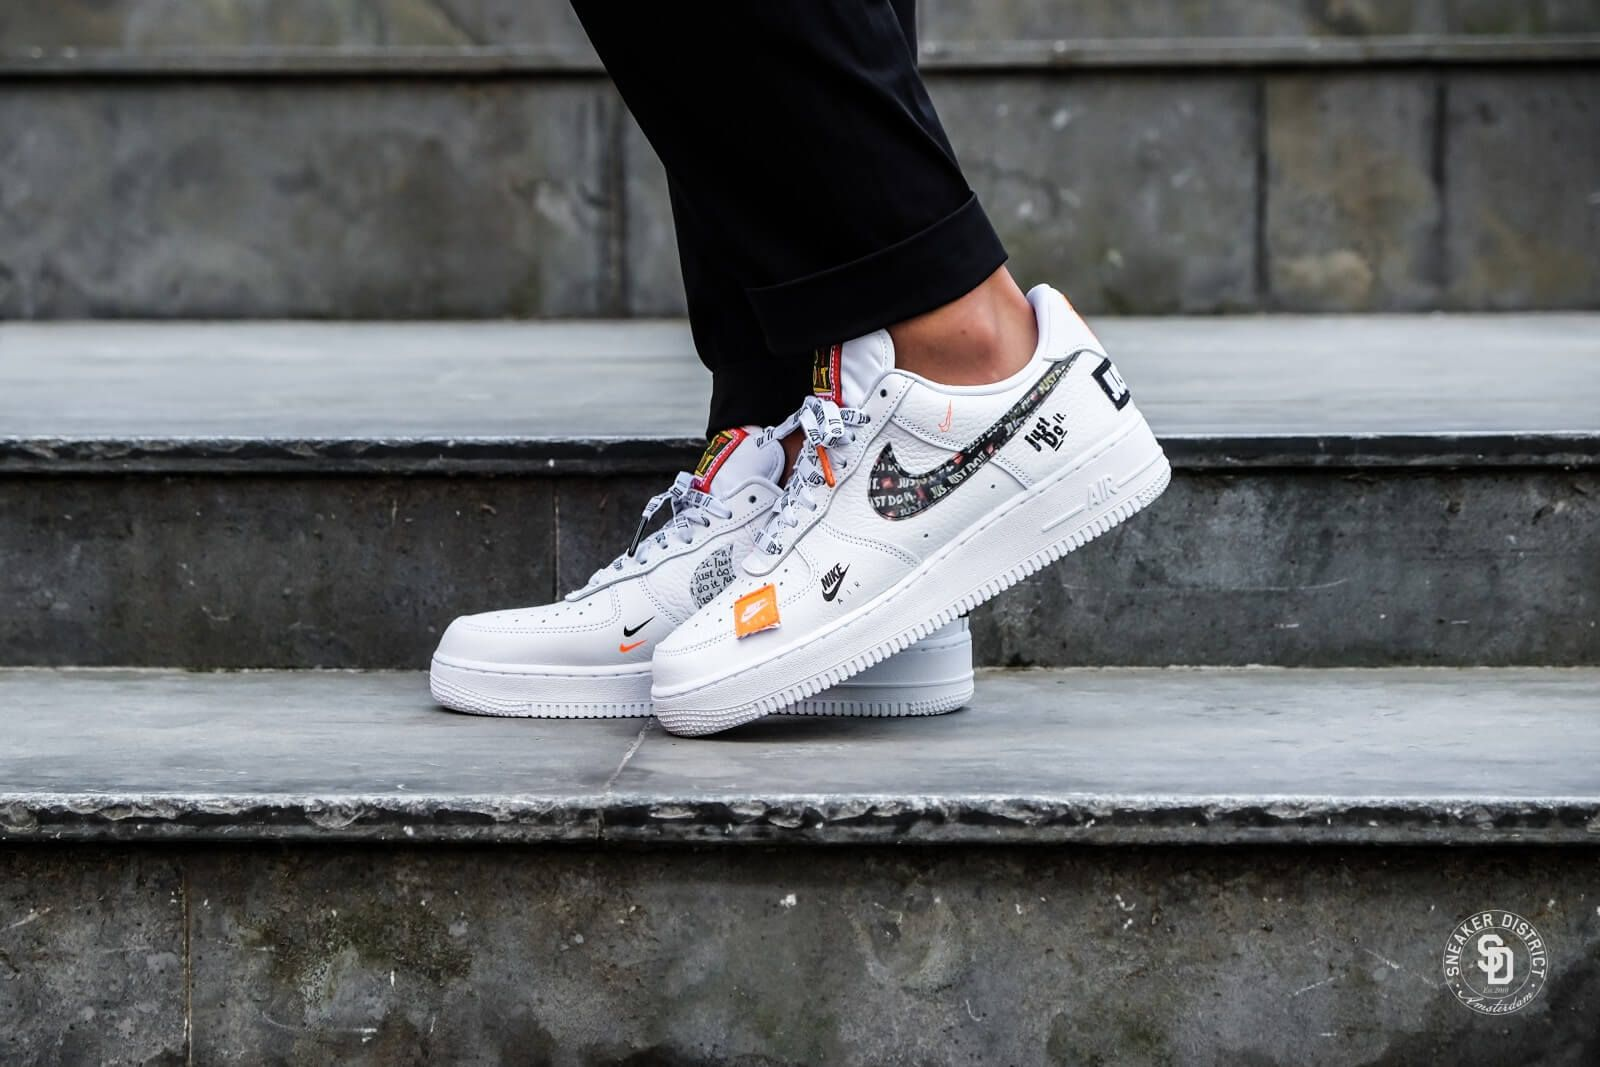 Nike Air Force 1 07 Just Do It White Black Total Orange Ar7719 100 Nike Air Force Nike Nike Air